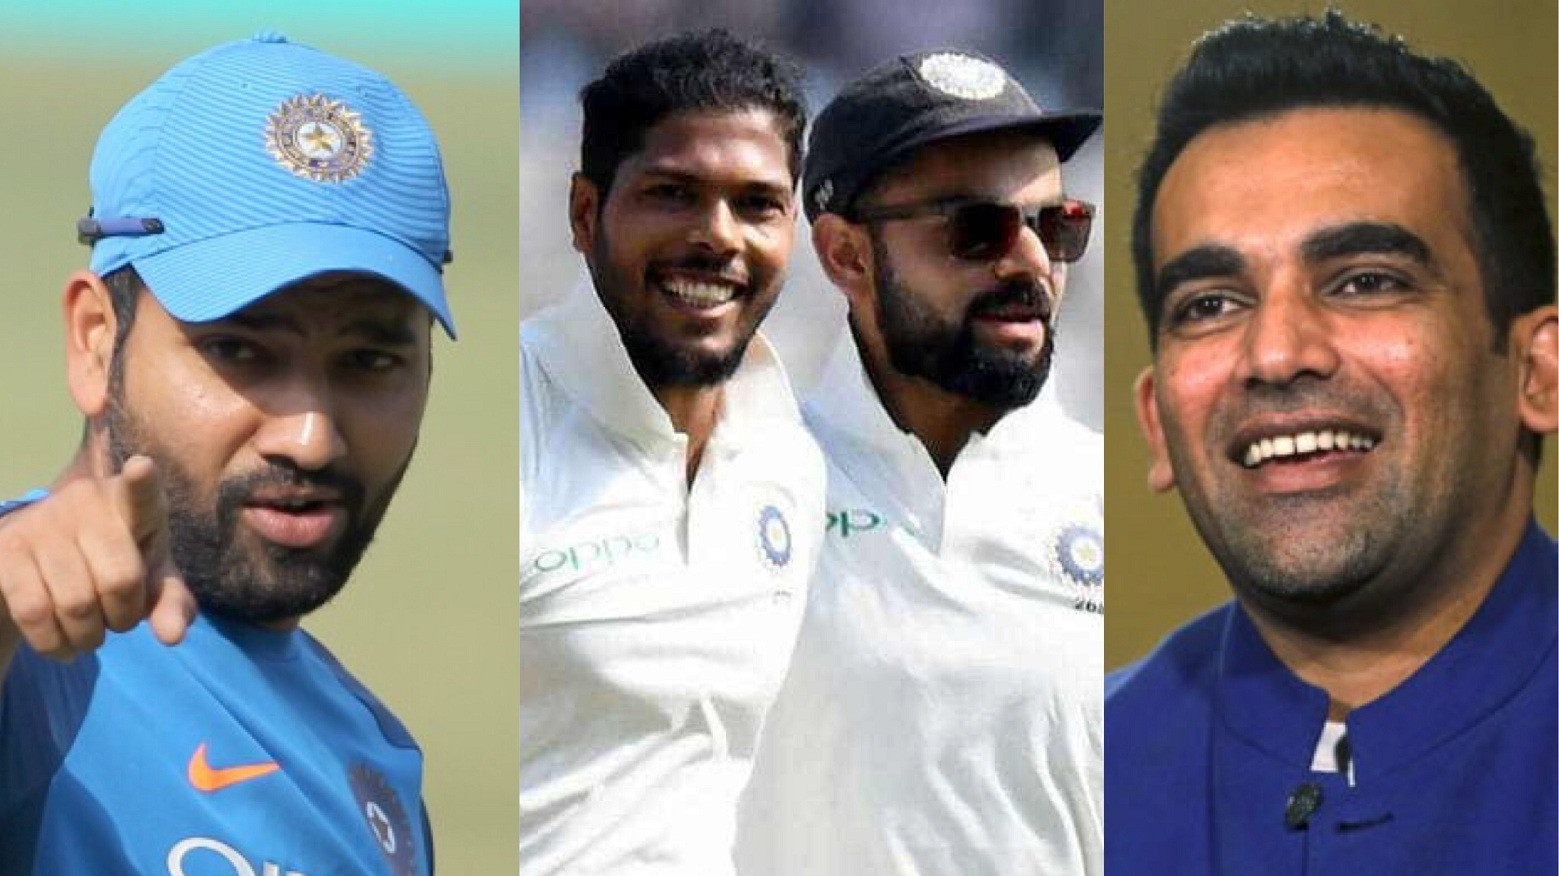 IND v WI 2018: Cricket fraternity applauds Umesh Yadav as Team India wins series 2-0